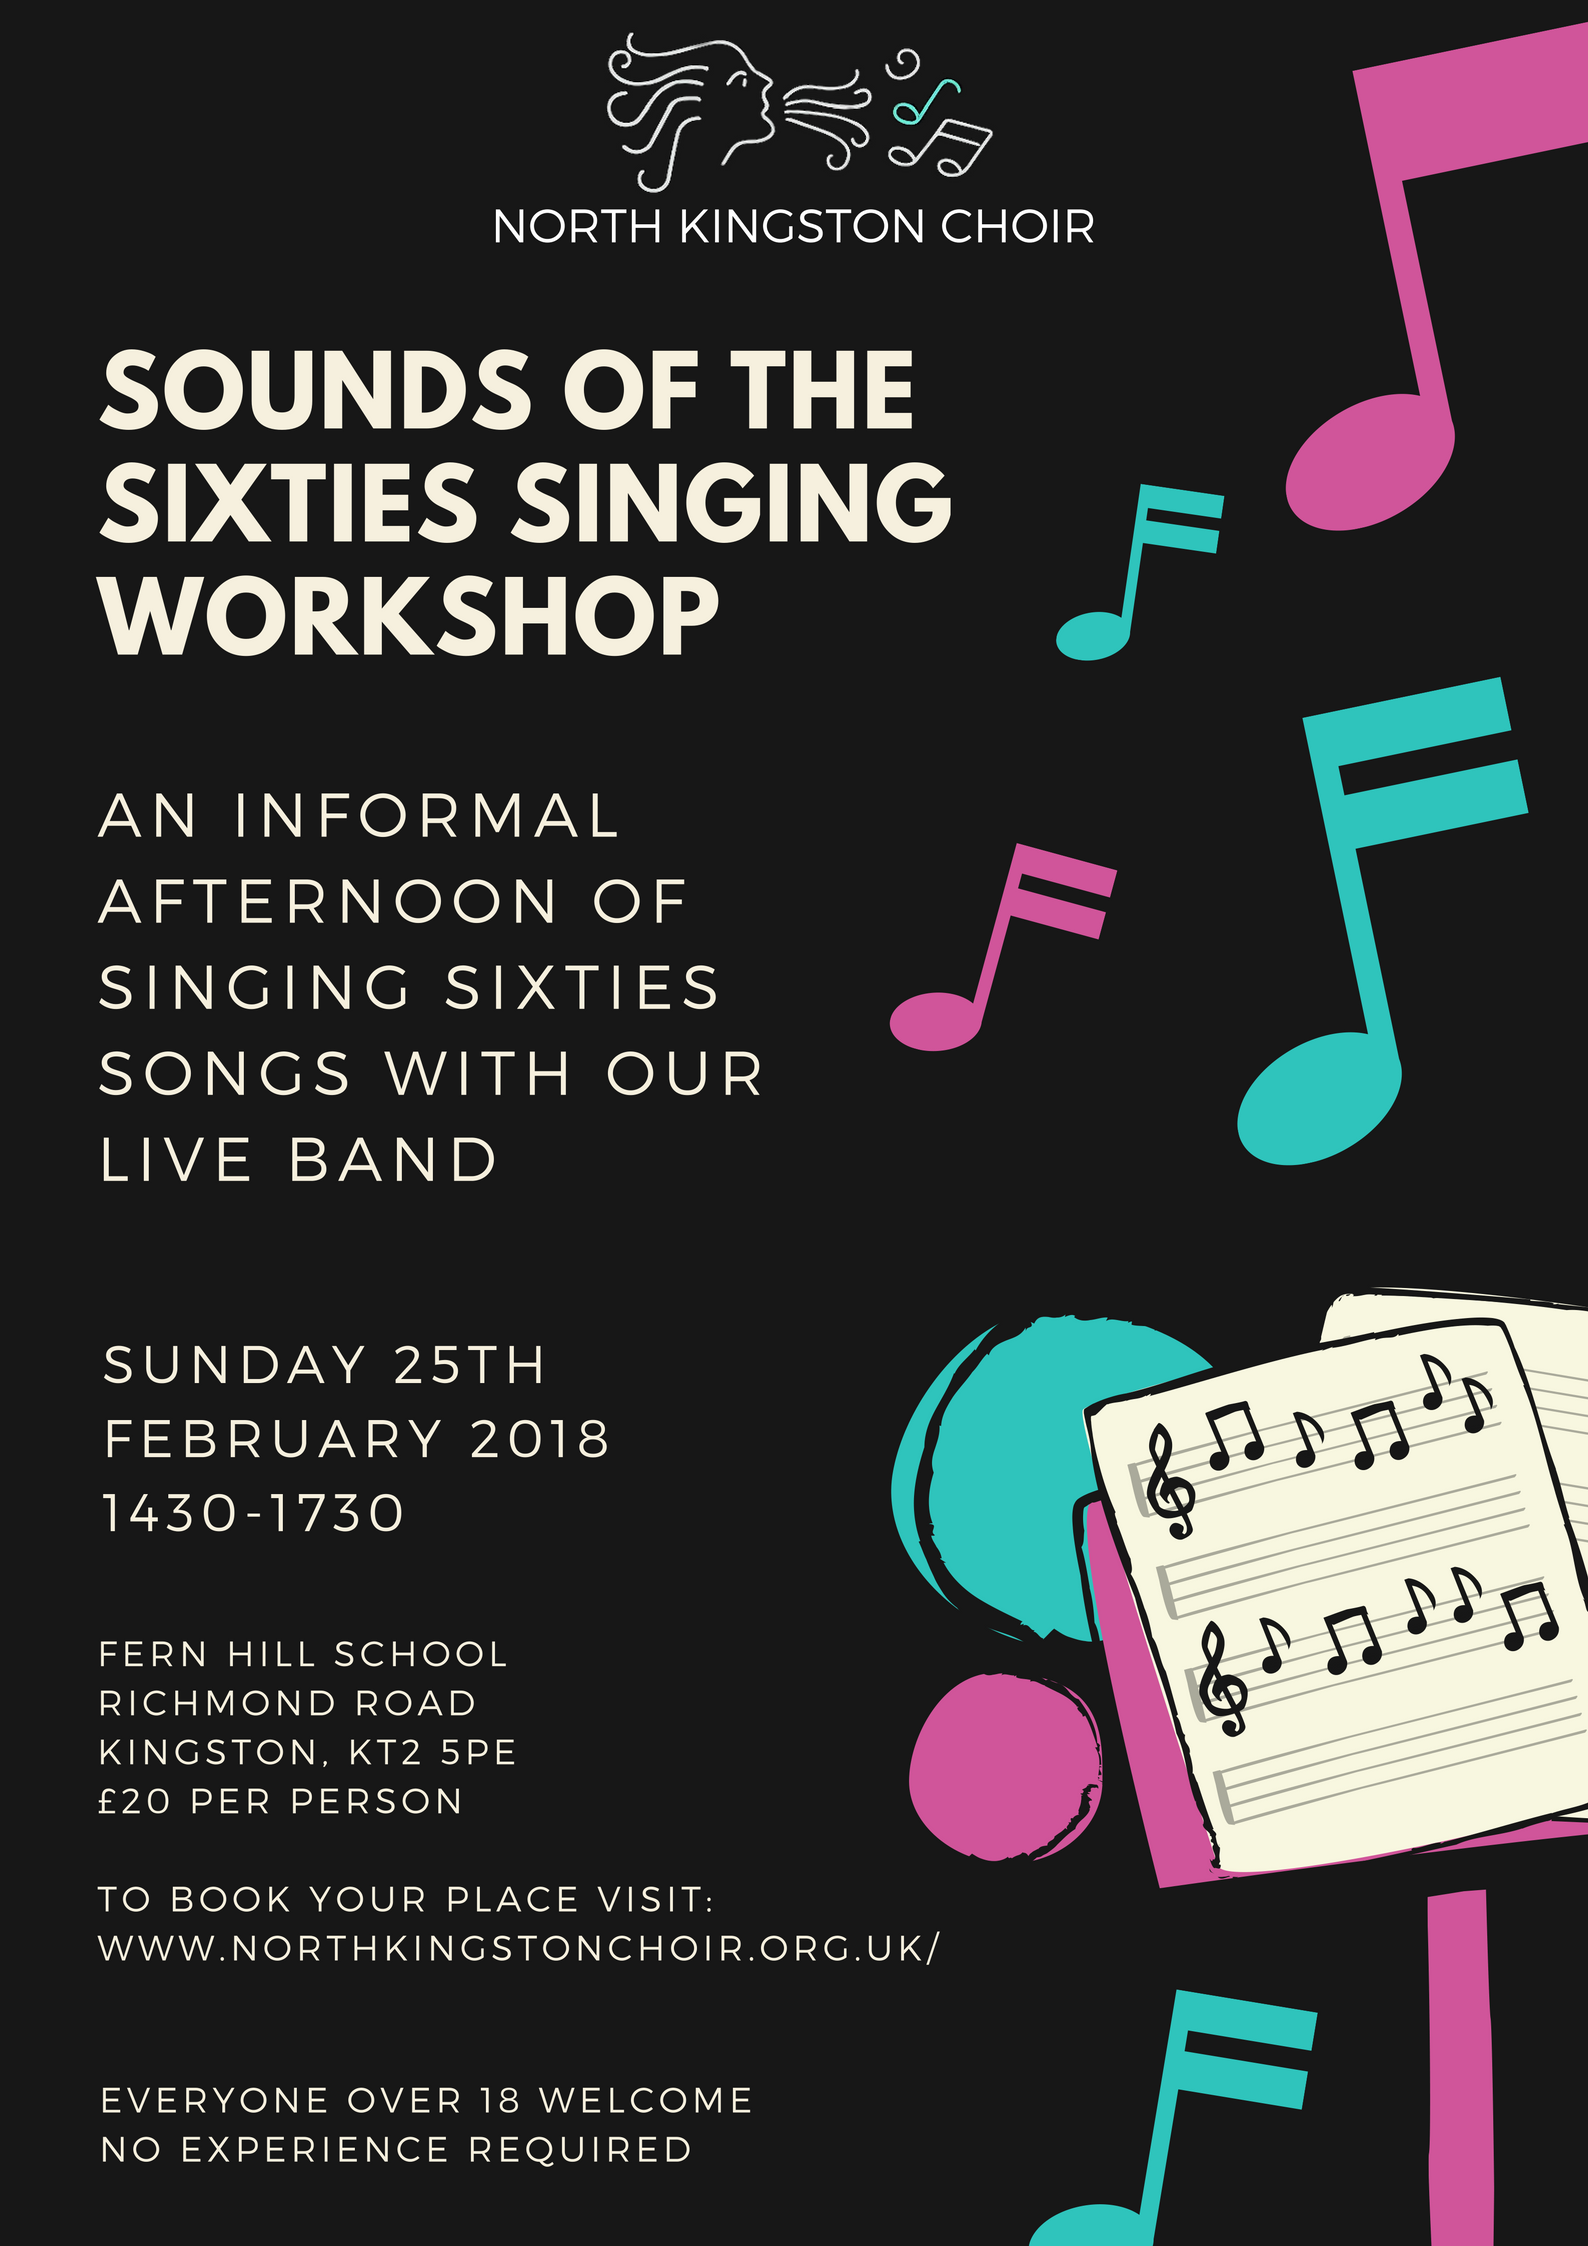 Sounds of the Sixties singing workshop